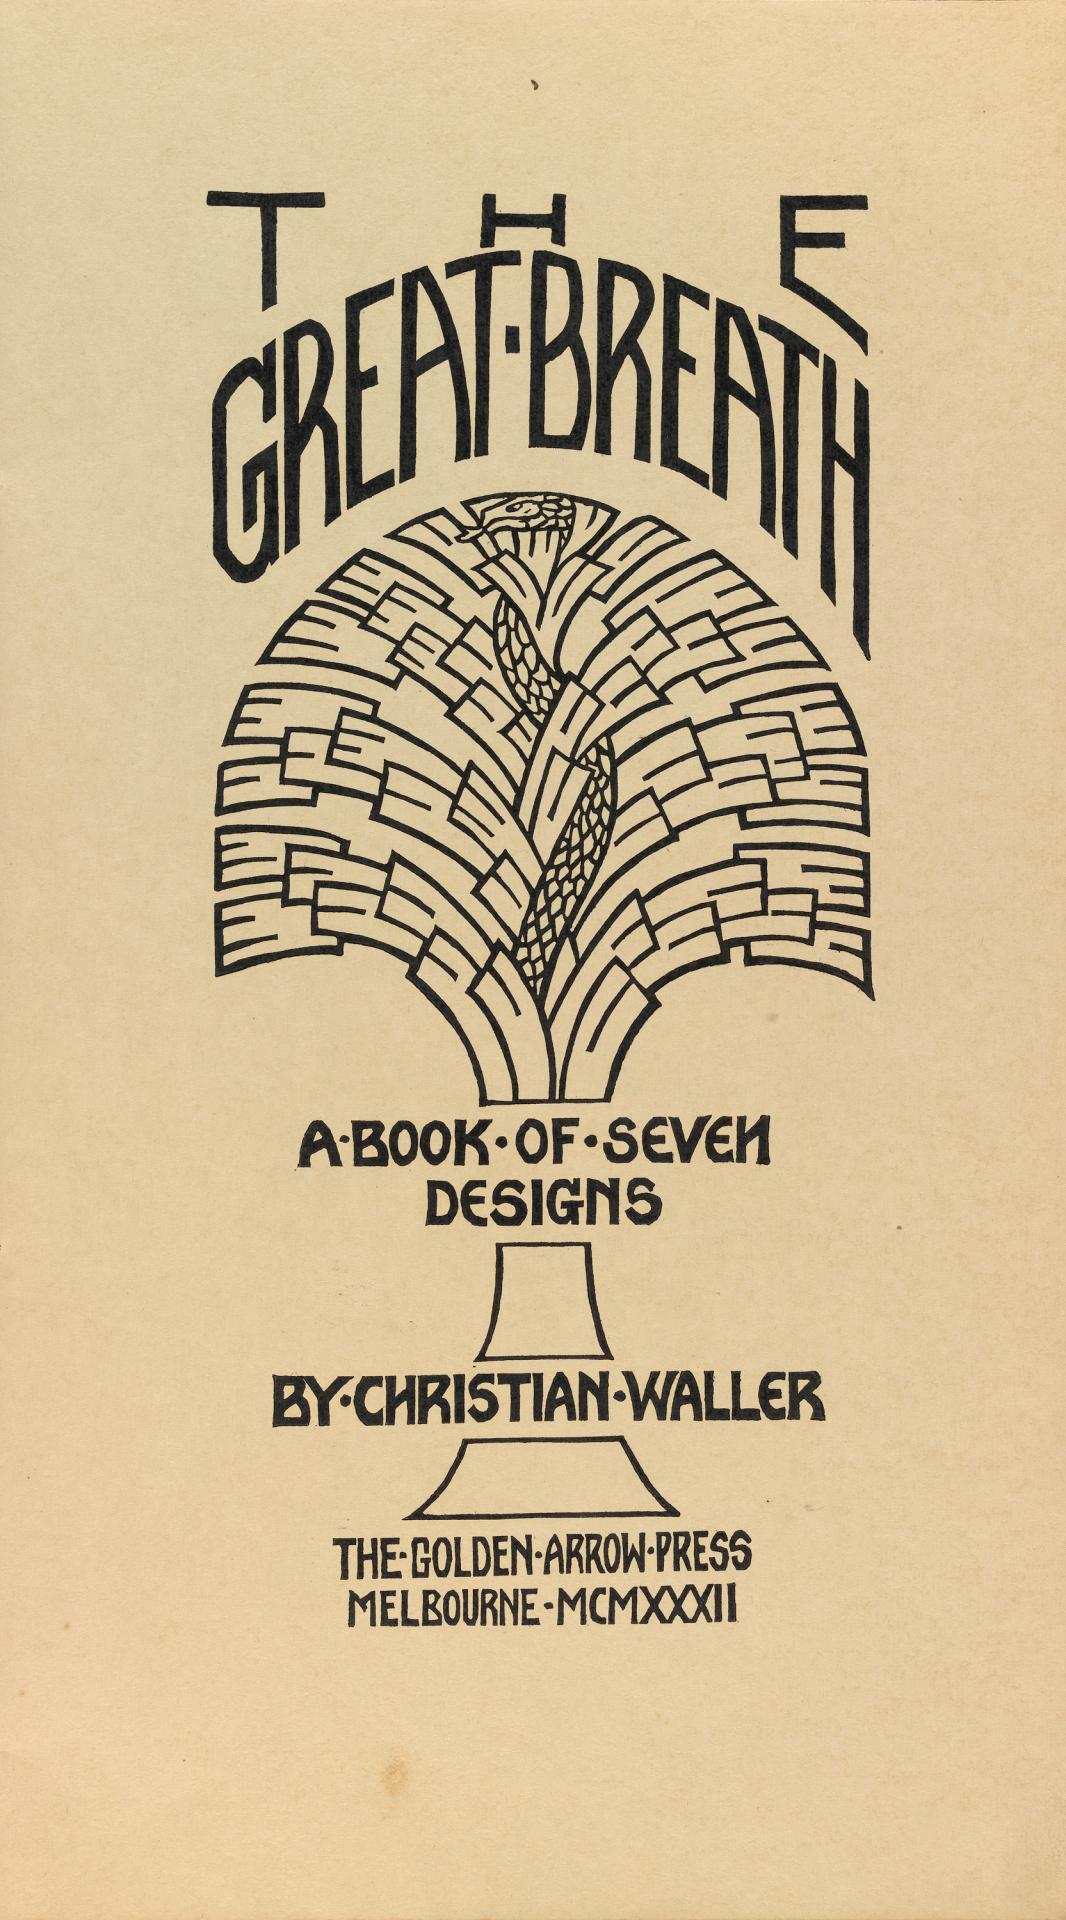 The Great breath - a book of seven designs